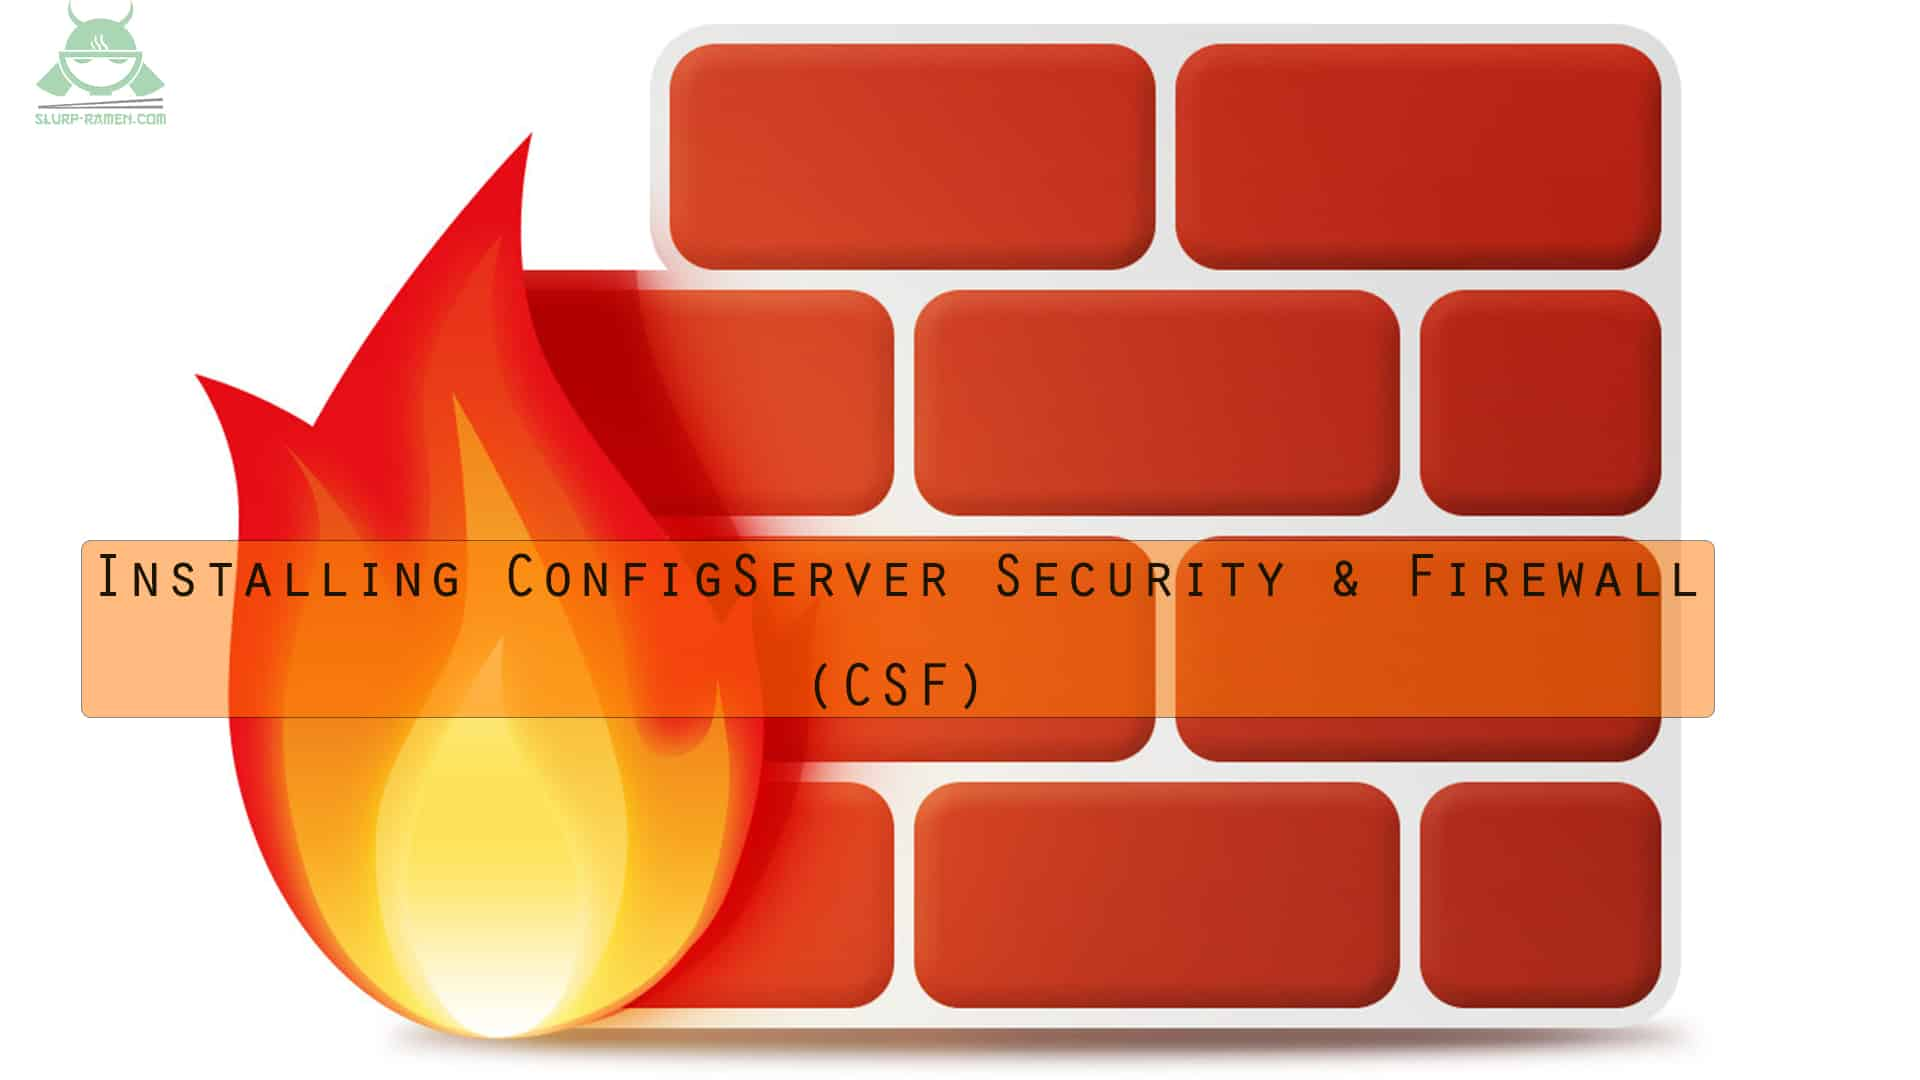 ConfigServer Security & Firewall (csf) installation